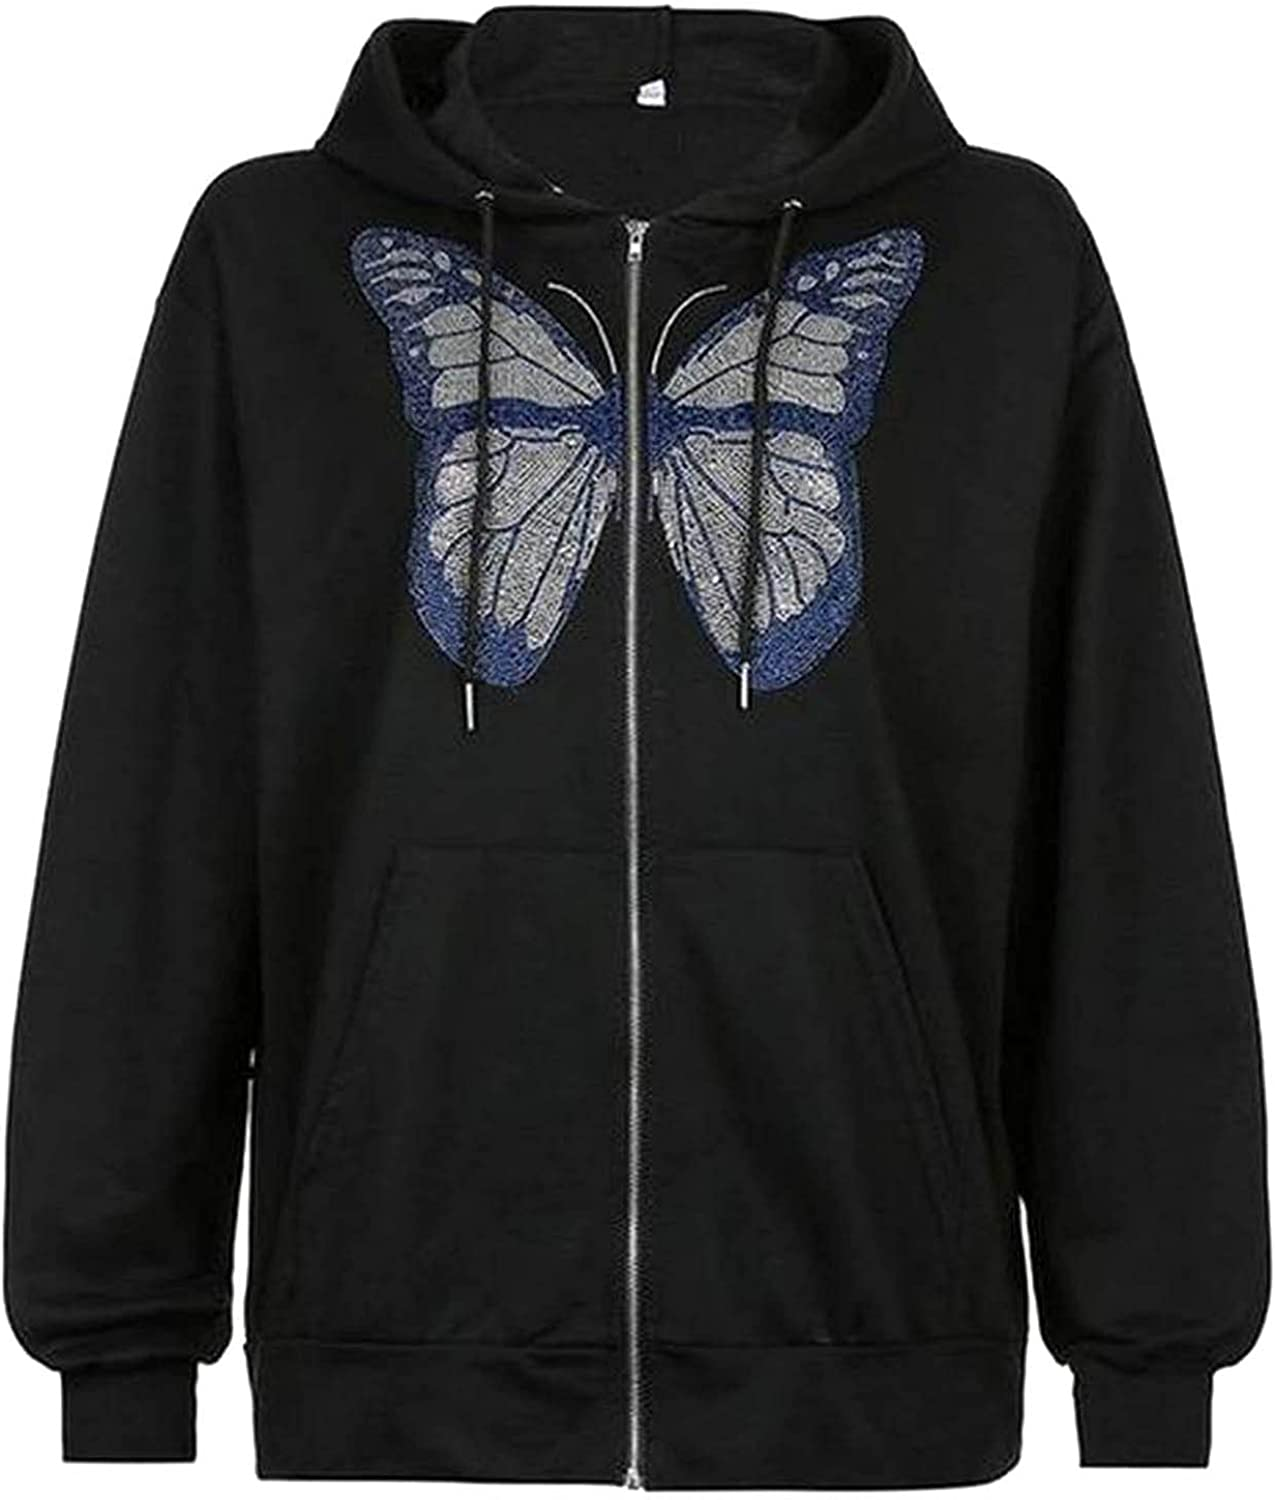 Pandaie Butterfly Print Cardigan Sweatshirts for Women Fashion Full Zip Shirts Pullovers with Hoodie Cardigan Jacket